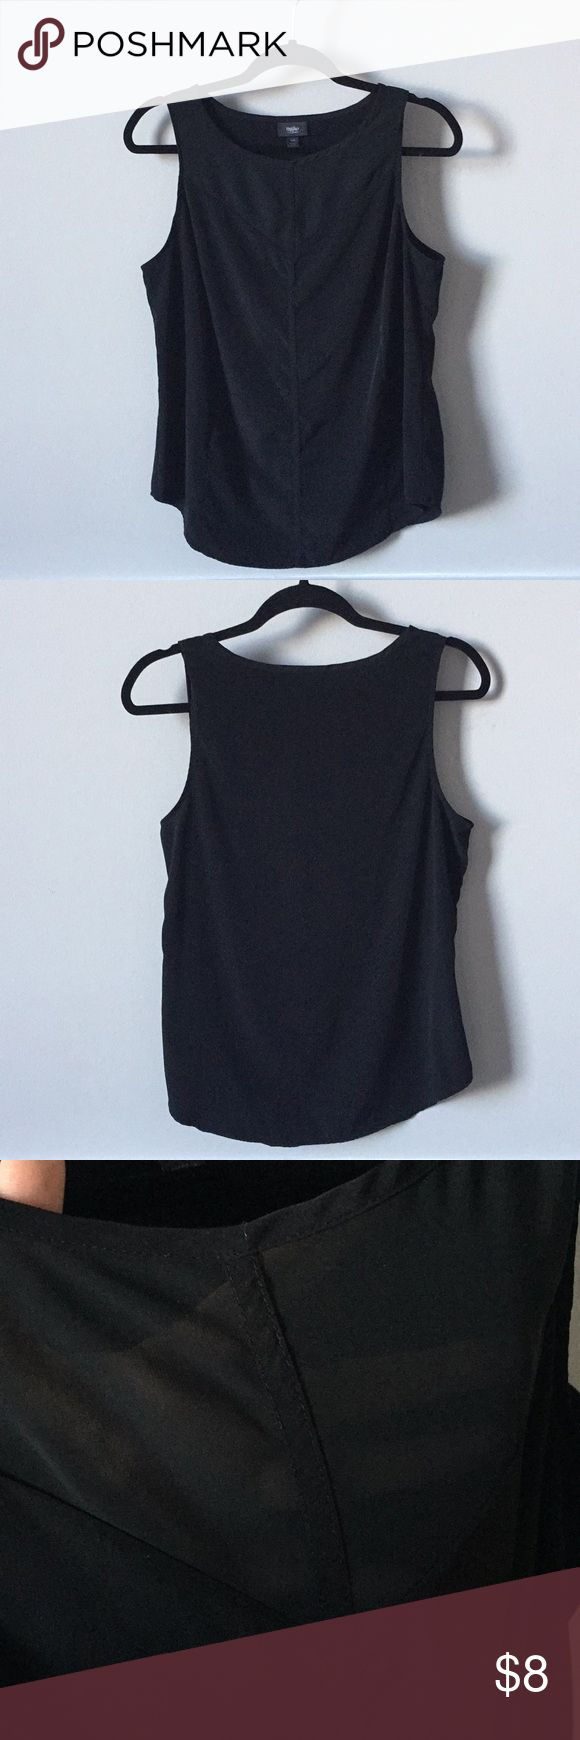 Mossimo Black Tank Mesh Sheer Panel Previously loved, good condition. This is a great shell/ tank top perfect for layering or wearing on its own. All black, with a sheer panel on top. This tank has piping on the front that is super flattering. The neckline is higher so the sheer part doesn't show anything too revealing. The back bottom hemline does have some pilling as shown but it's still in great condition. Mossimo Supply Co. Tops Tank Tops